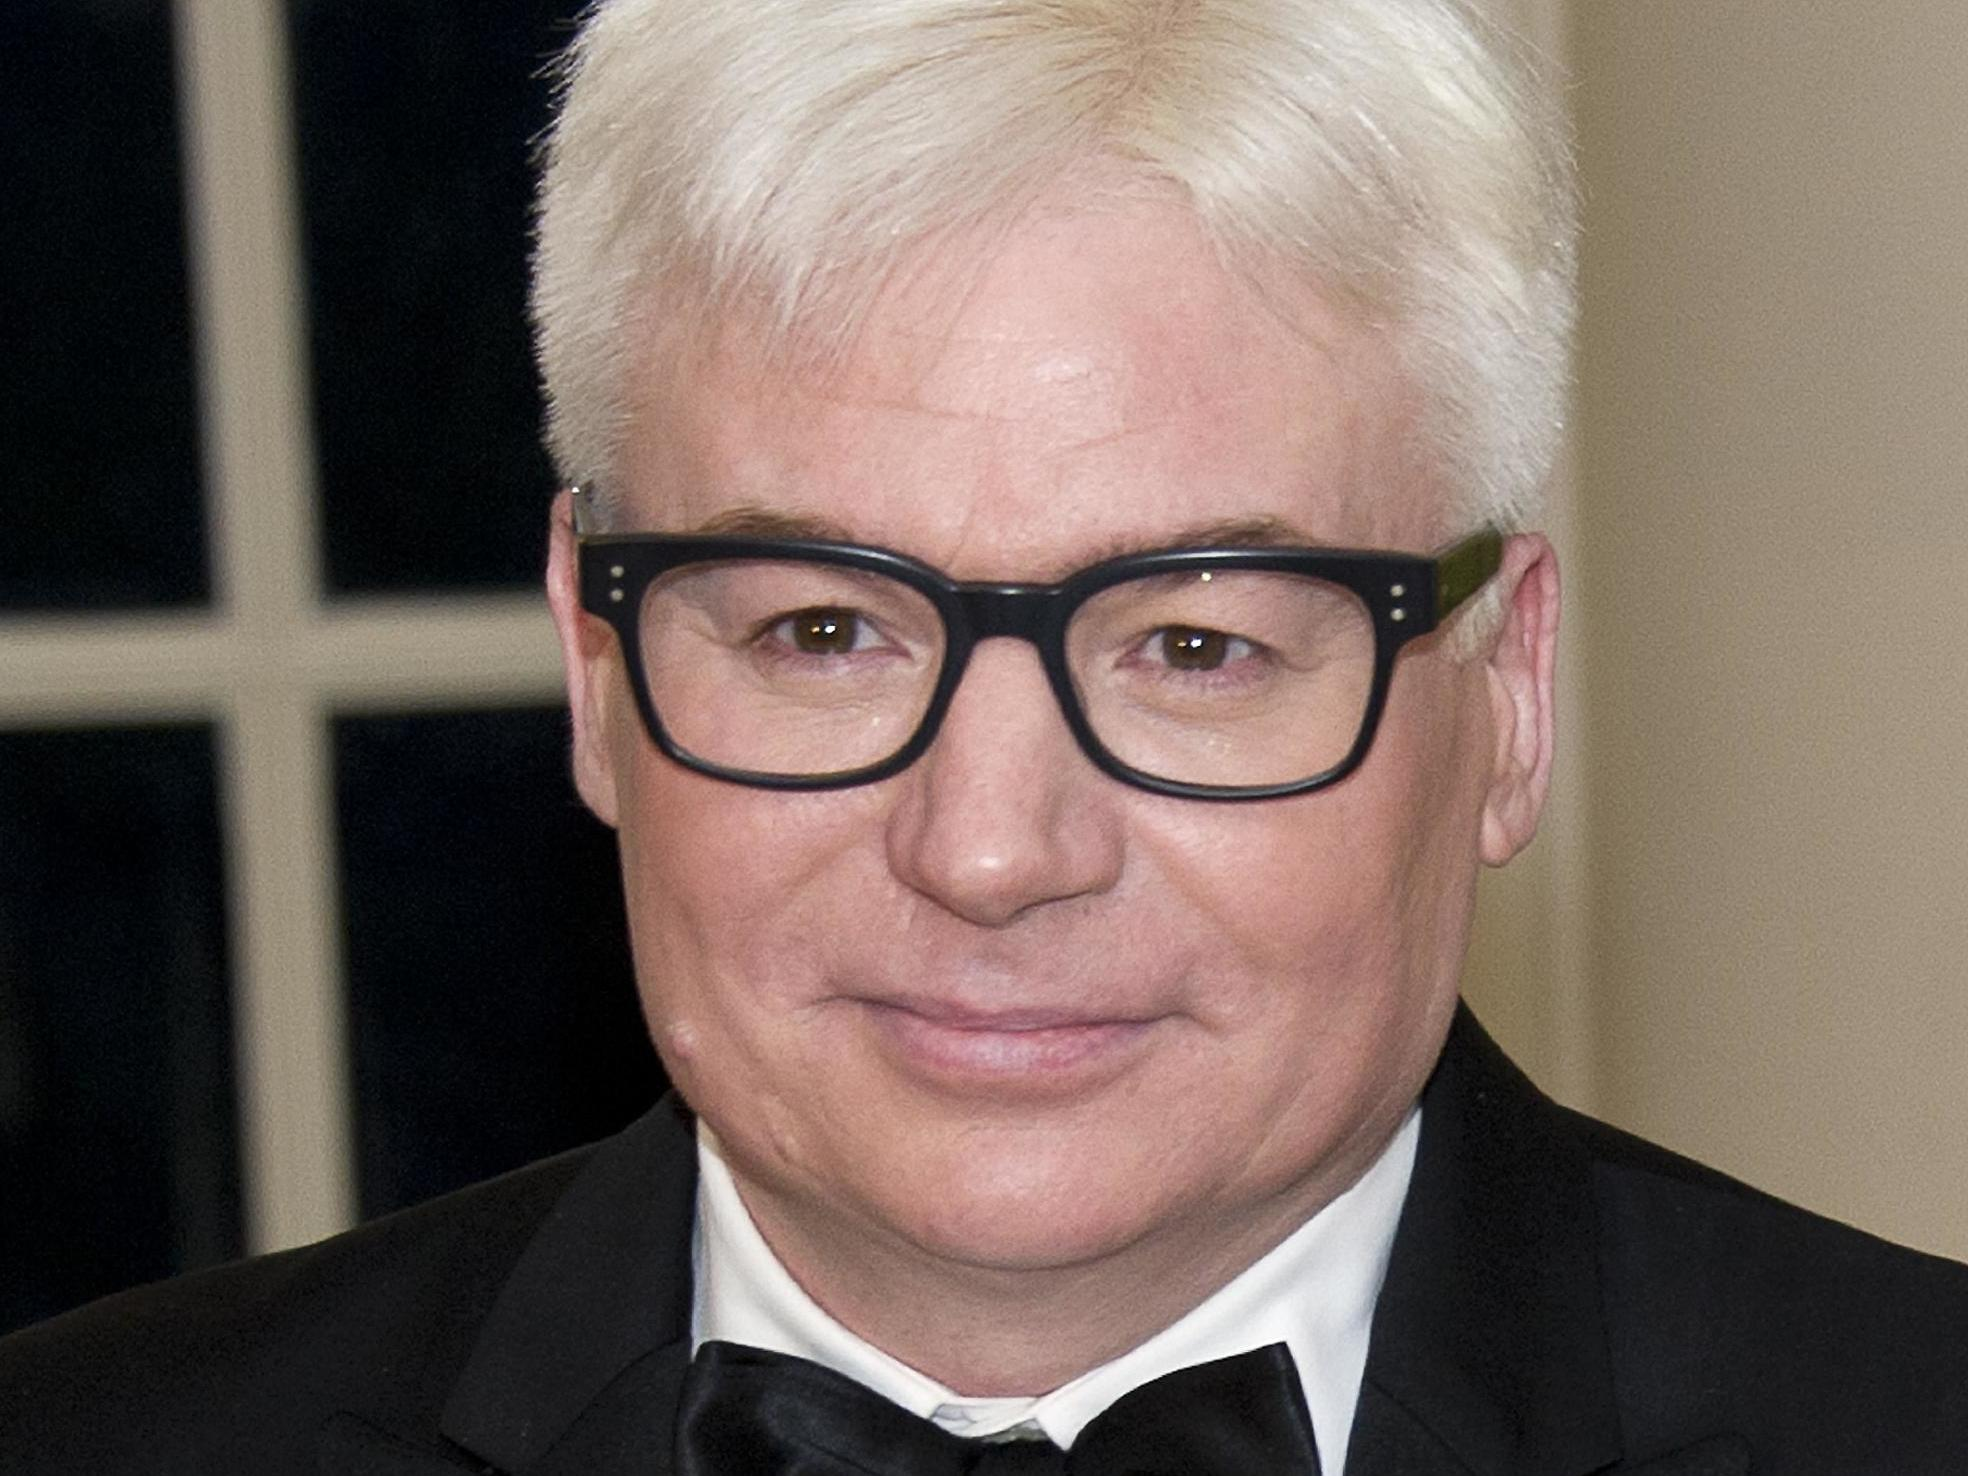 Mike Myers: Austin Powers star cast as lead role in Netflix comedy series